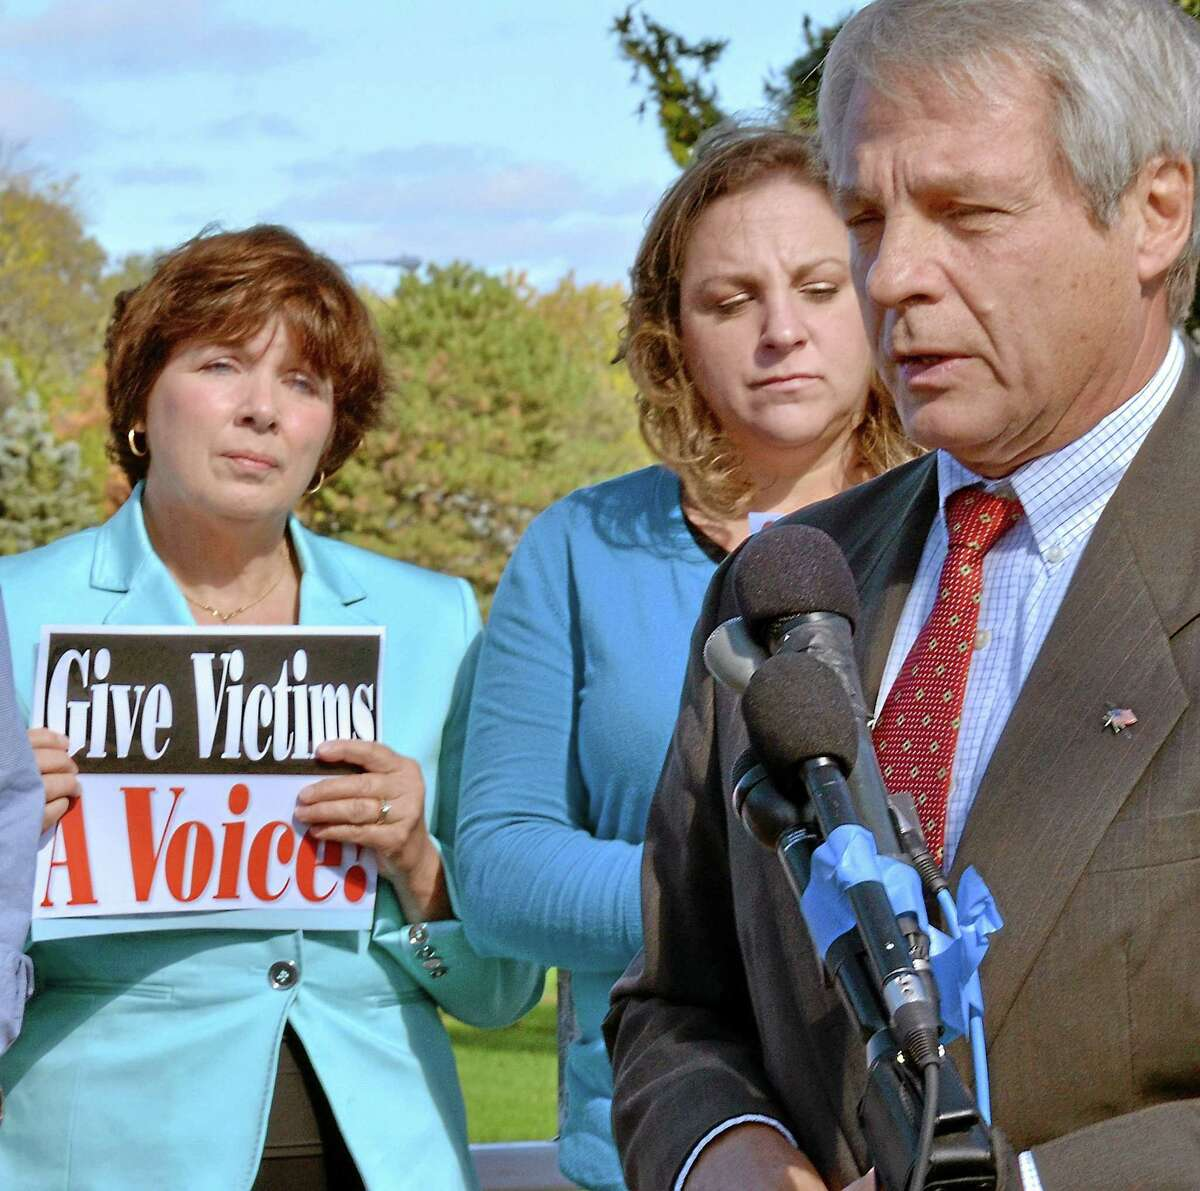 State Sen. Len Suzio, former Republican Senator in Meriden, speaks about the need for the state victim advocate in this file photo.